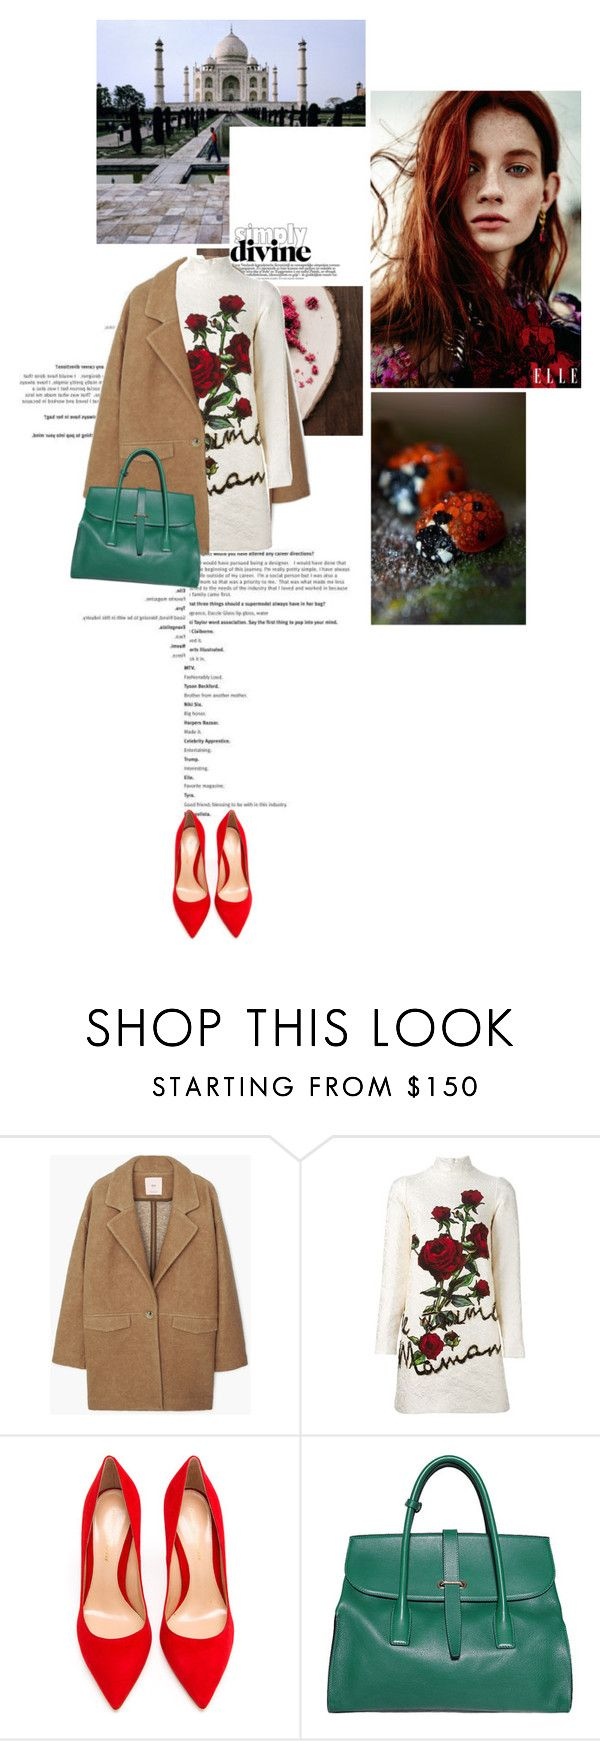 """""""Immarcescible"""" by farahhind ❤ liked on Polyvore featuring MANGO, Dolce&Gabbana, Gianvito Rossi and Sonia Rykiel"""